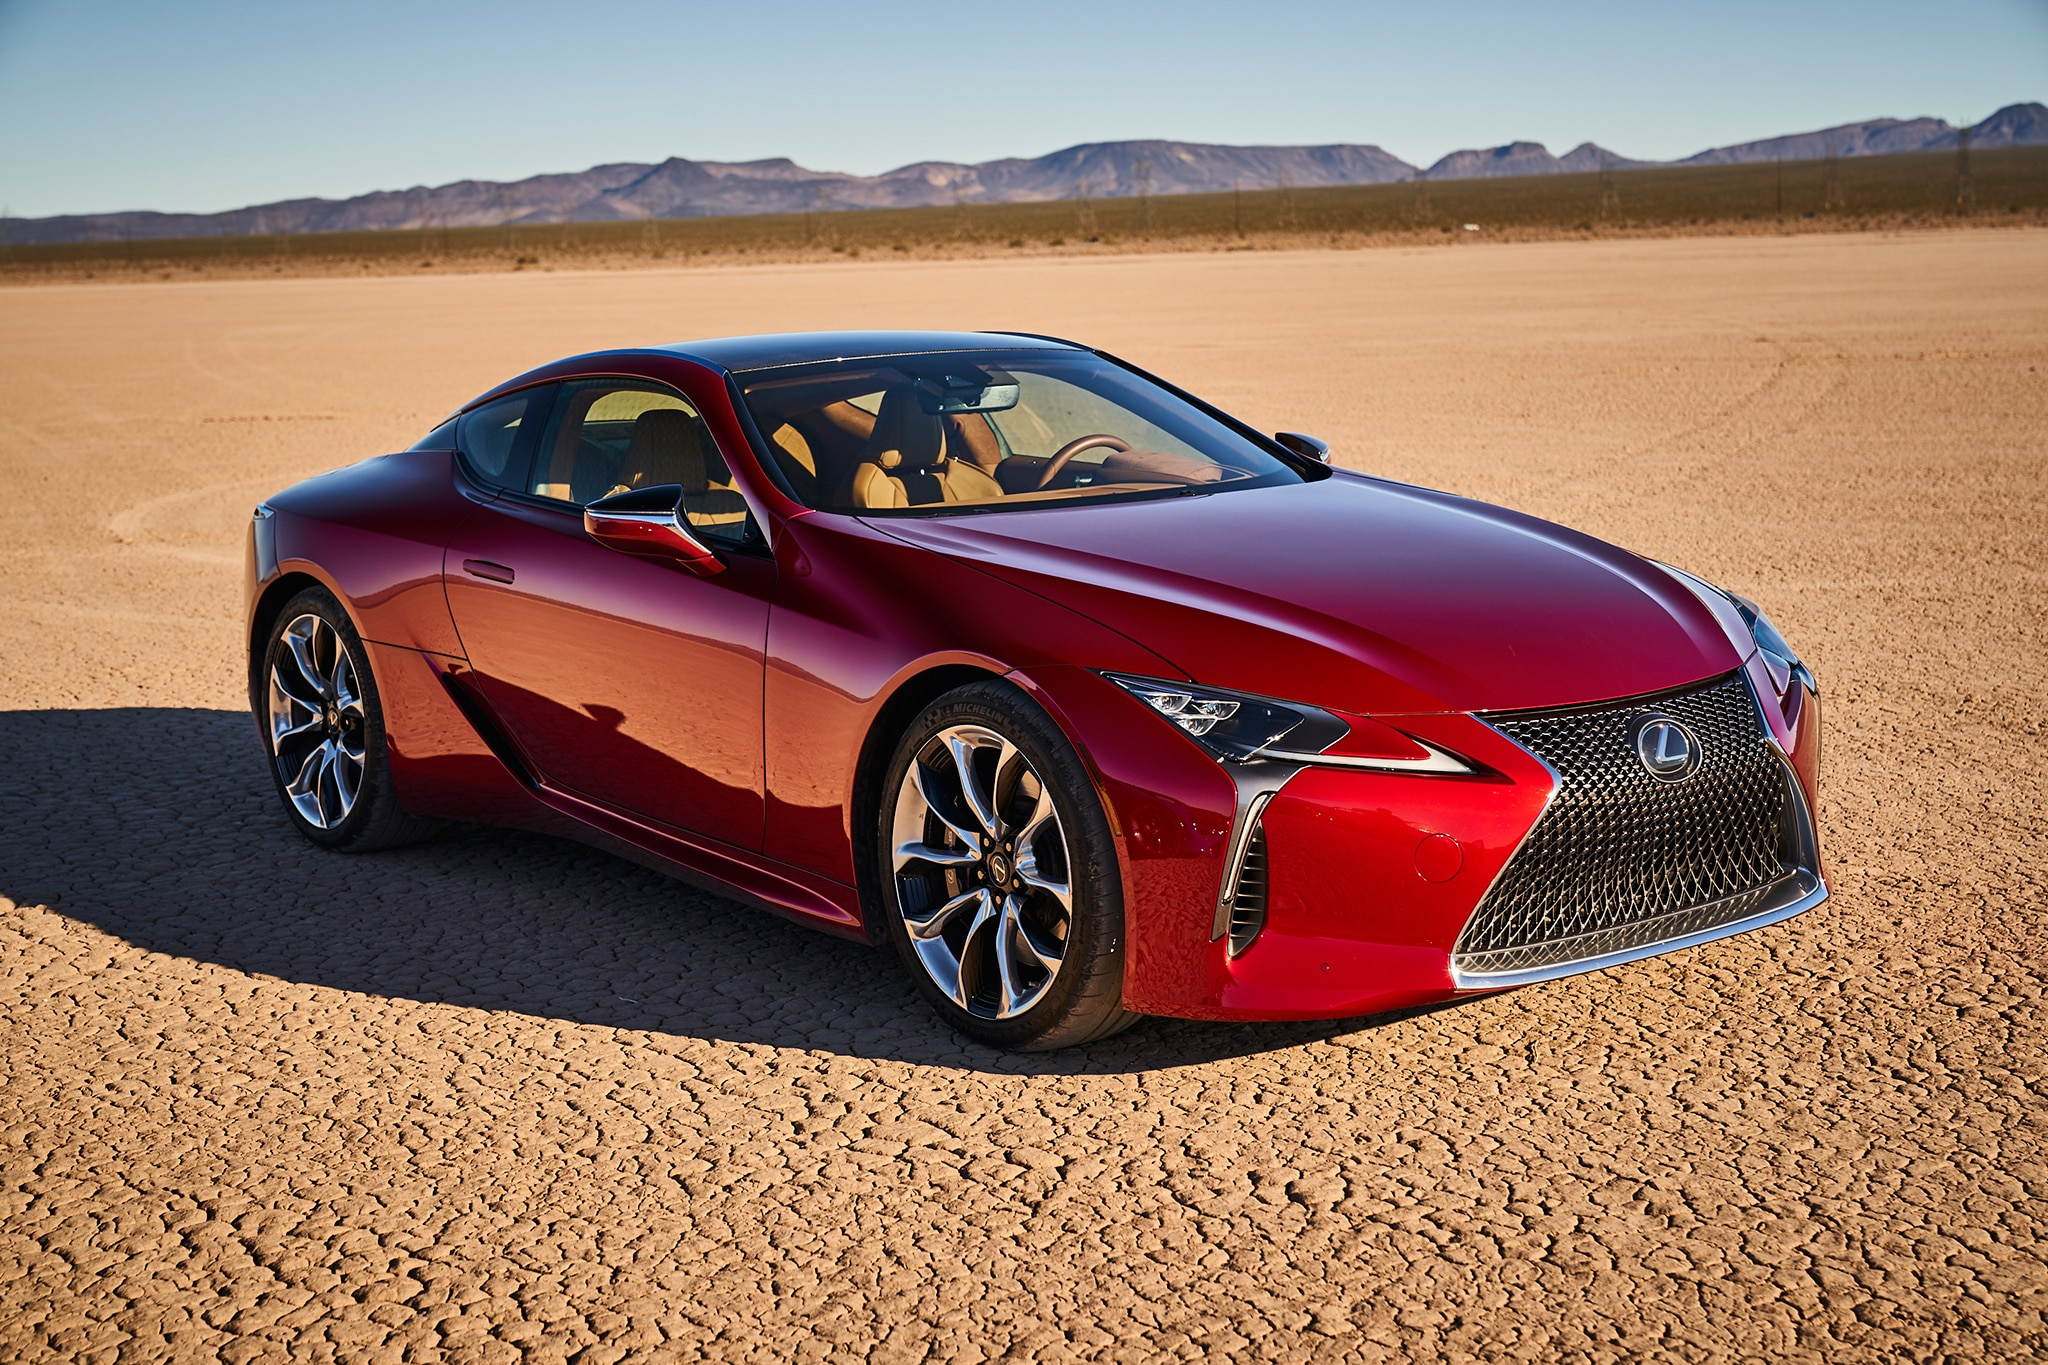 2018 Lexus LC 500 Owners Manual